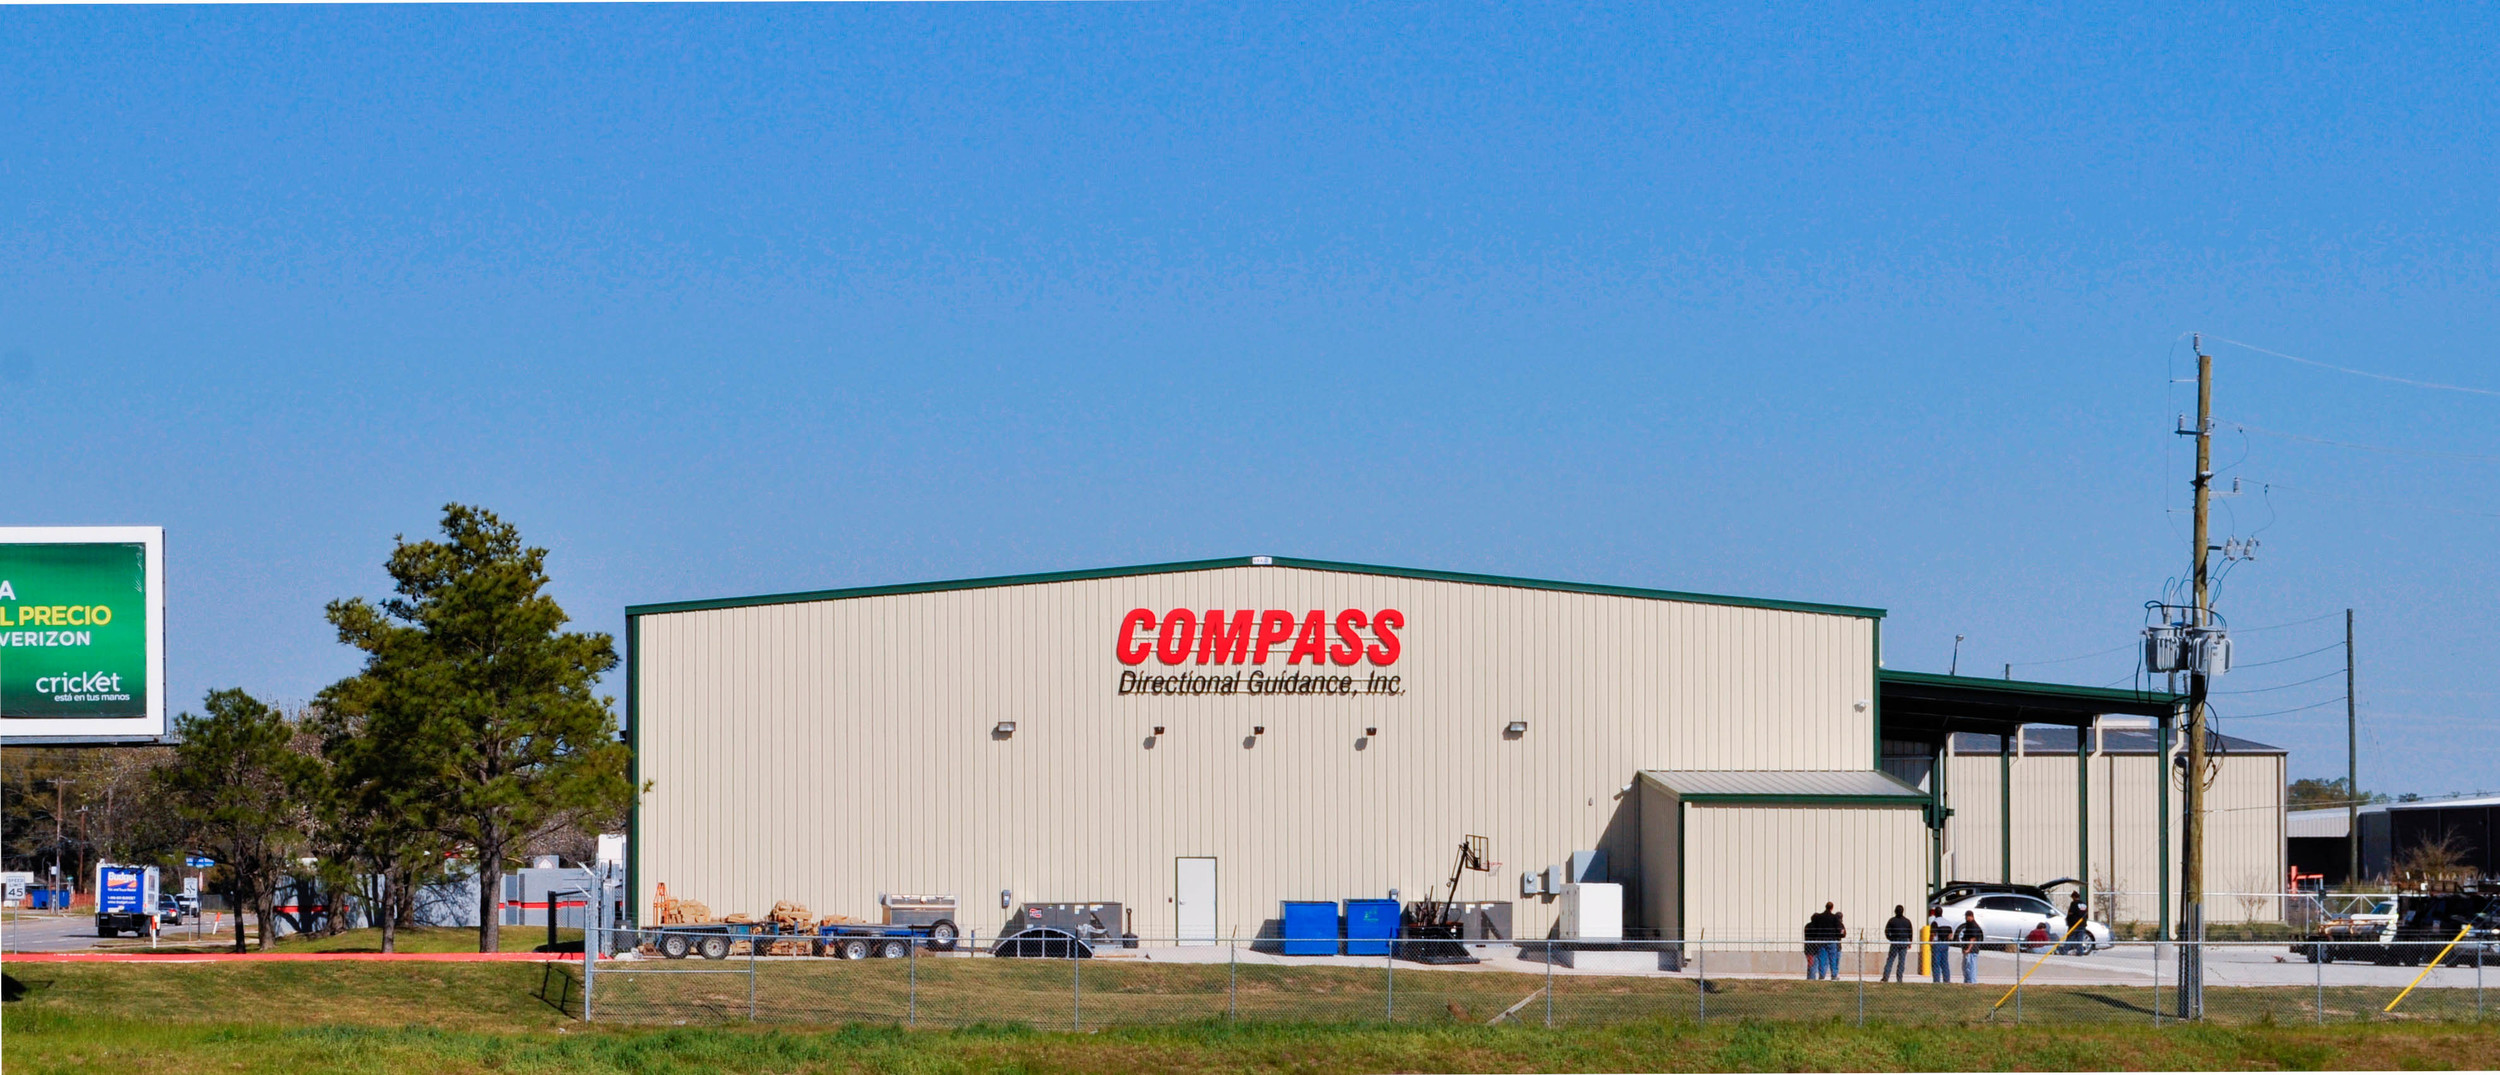 Compass Exterior Sign on Building